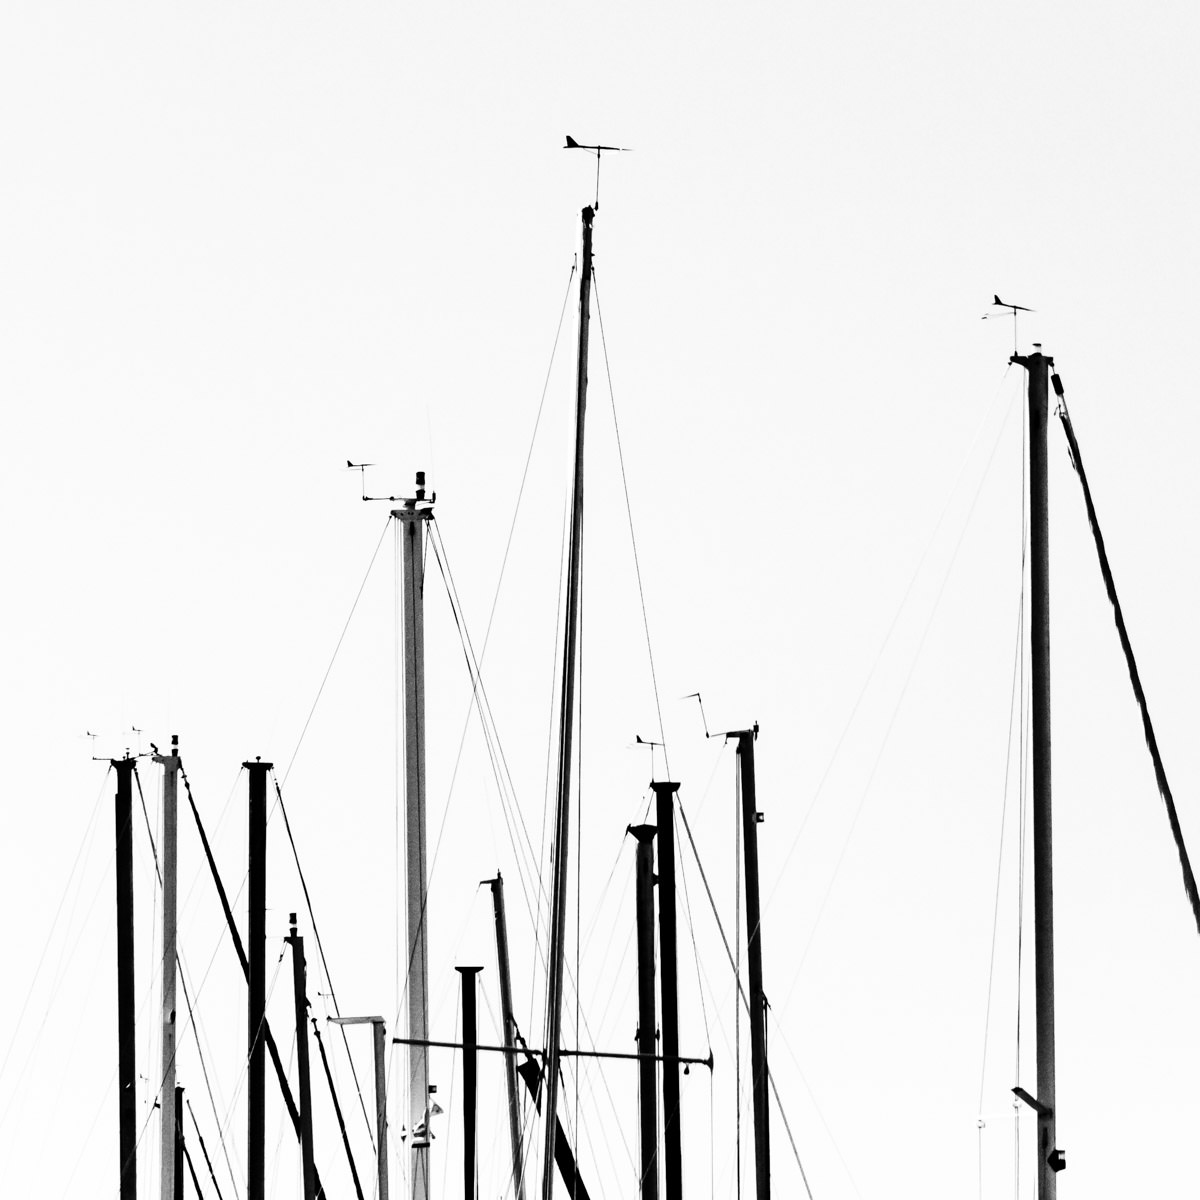 Sailboat masts at Joe Pool Lake in Cedar Hill, Texas.